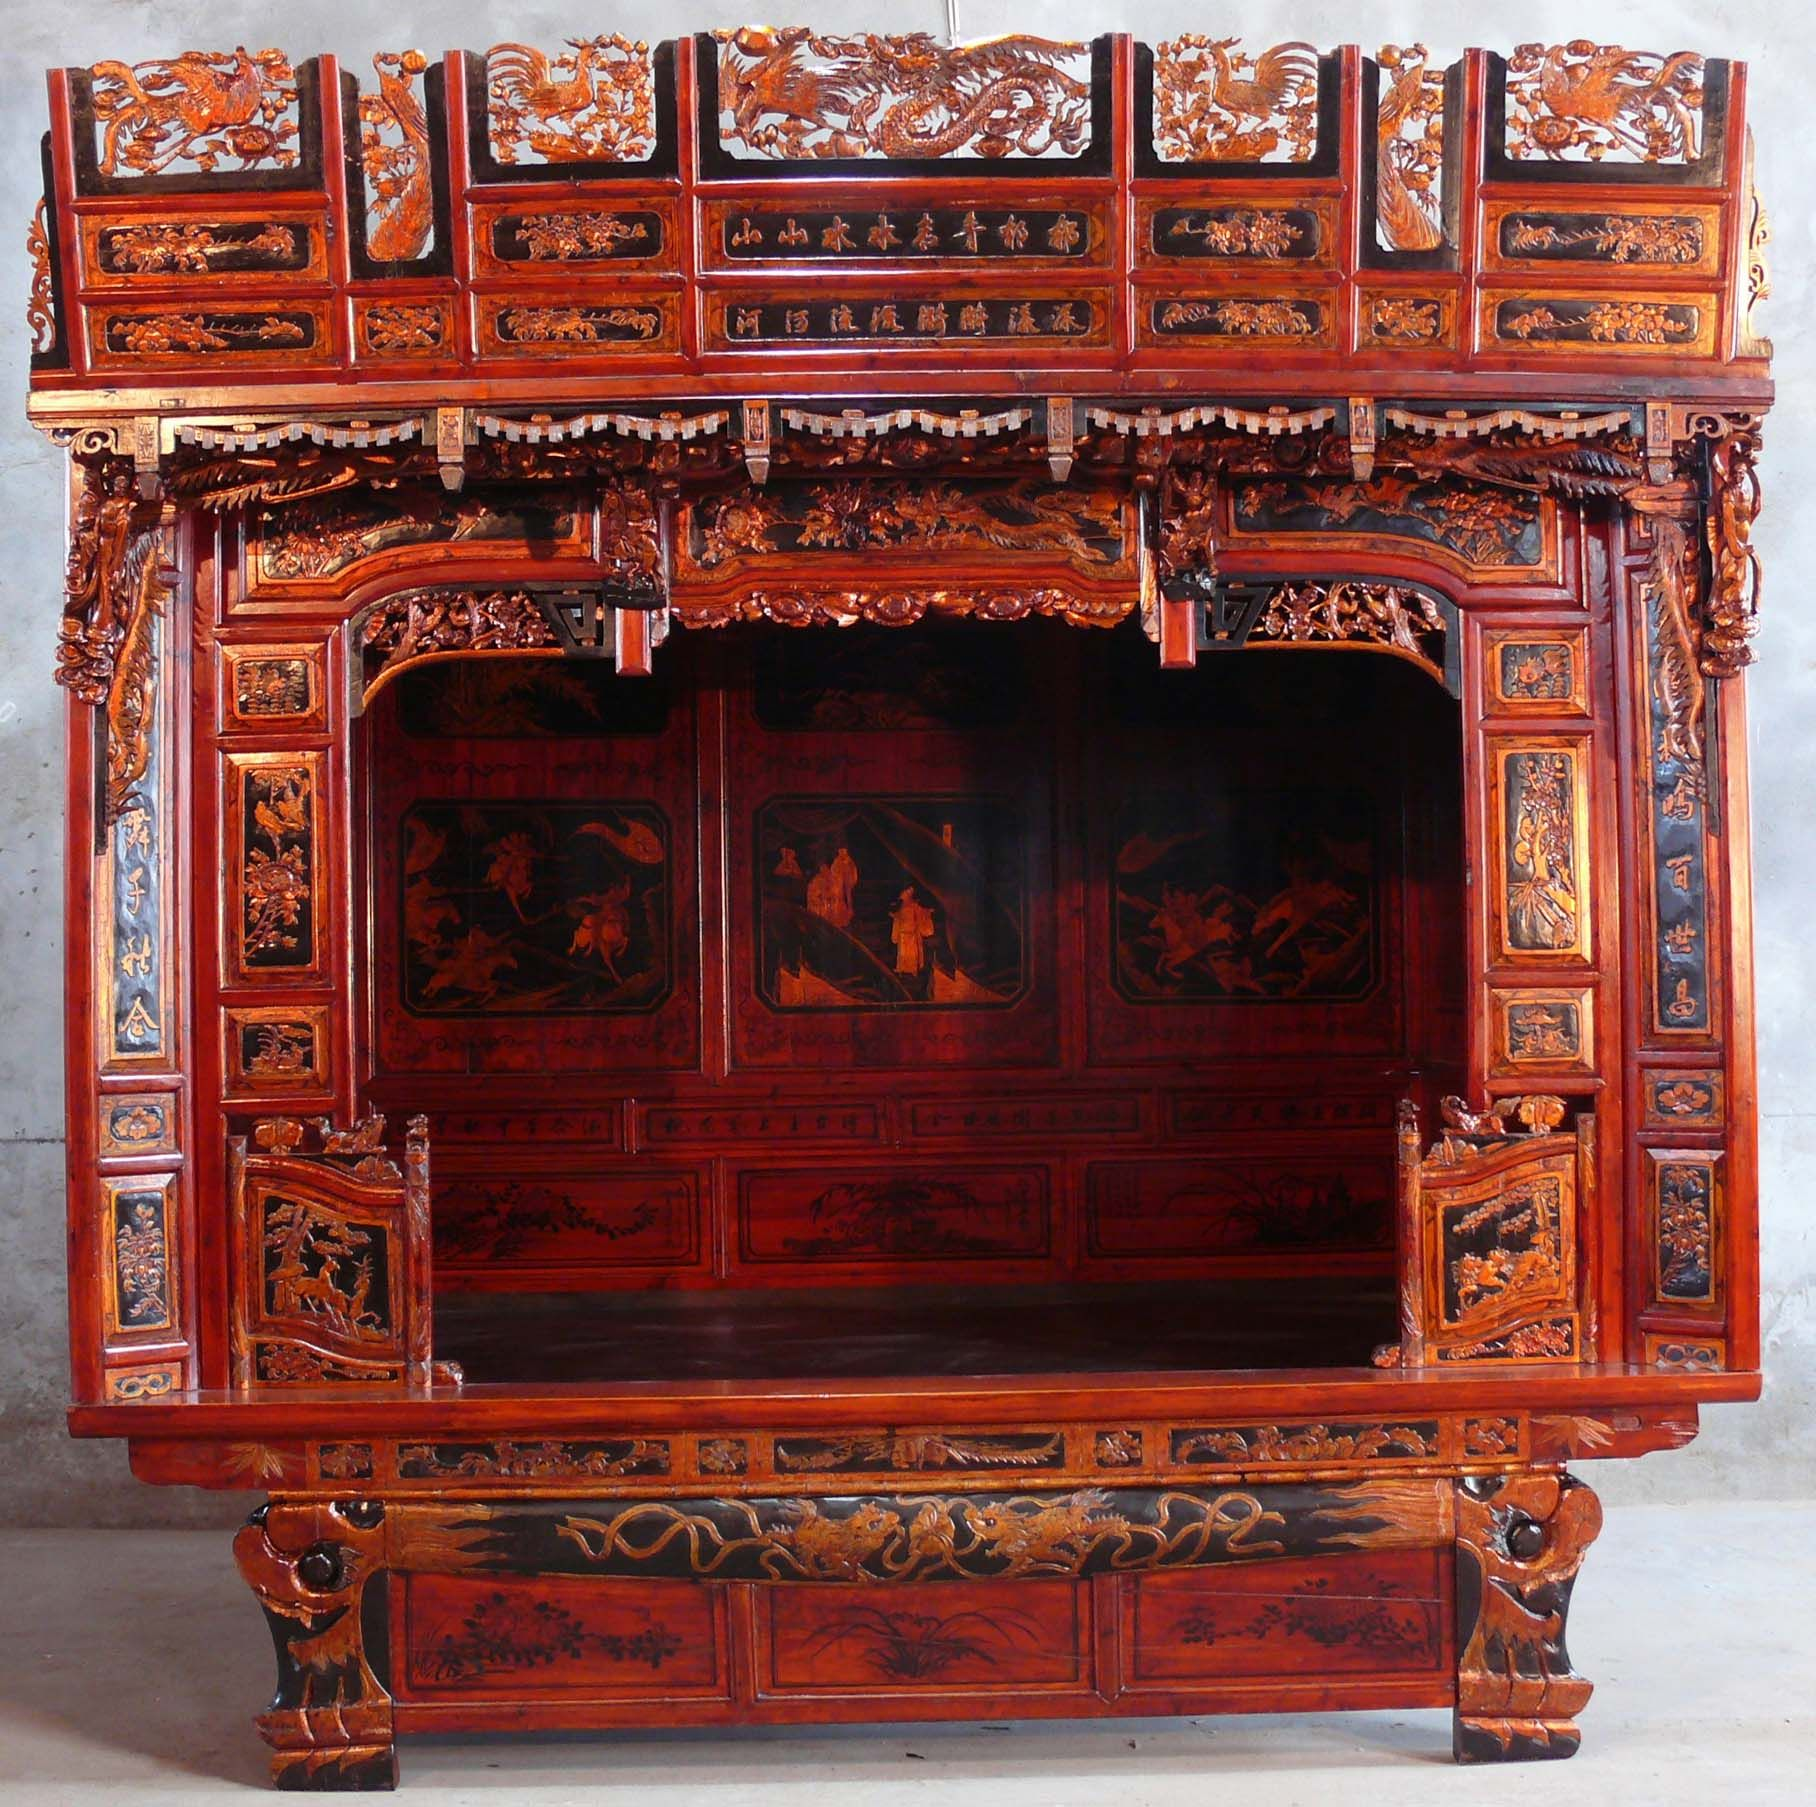 chinese wedding sedan chair reclining padded beach with footrest beds traditional asian furniture